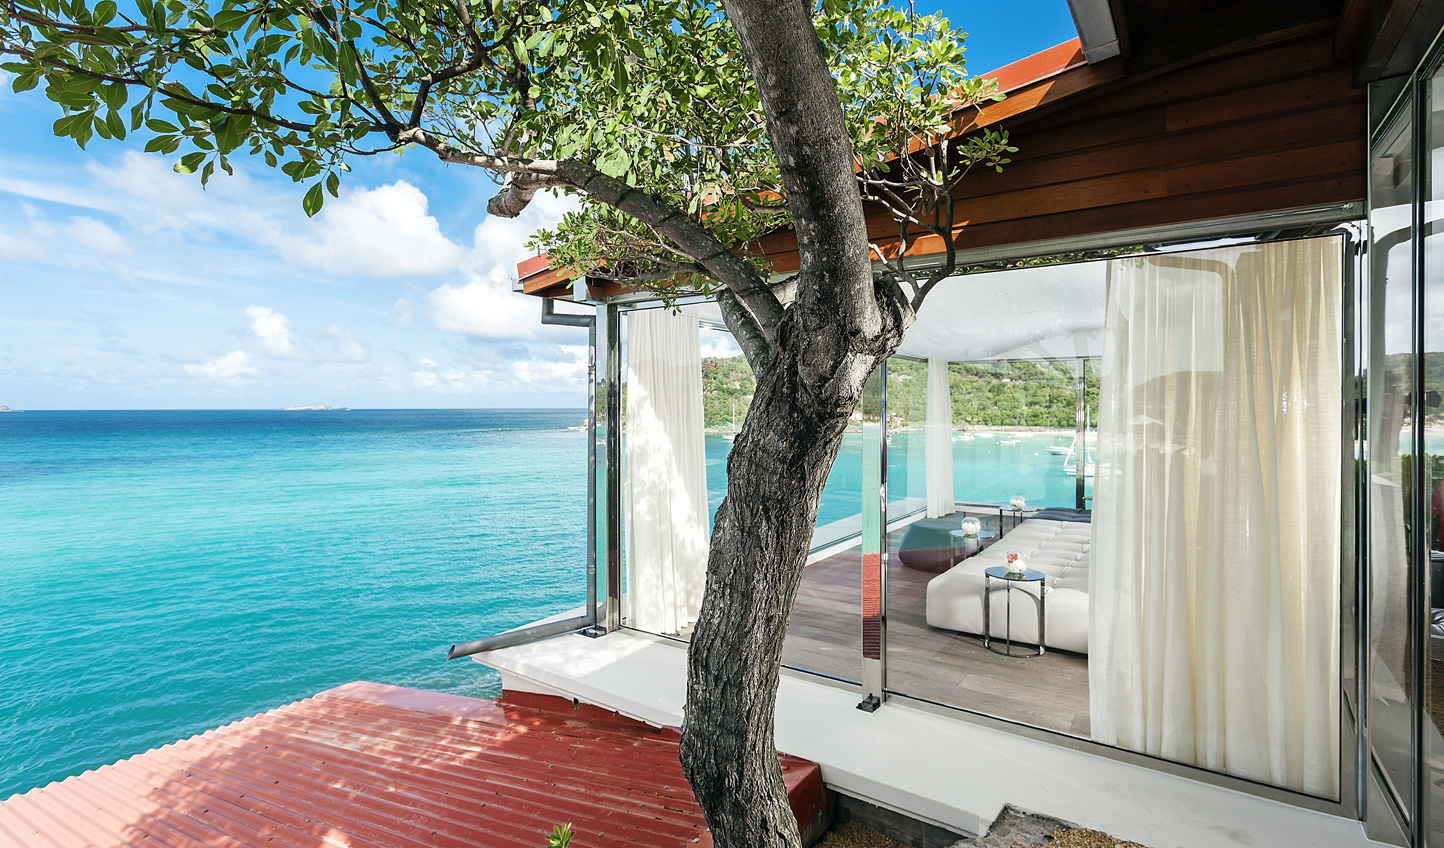 Forget the world for a few days in your private villa